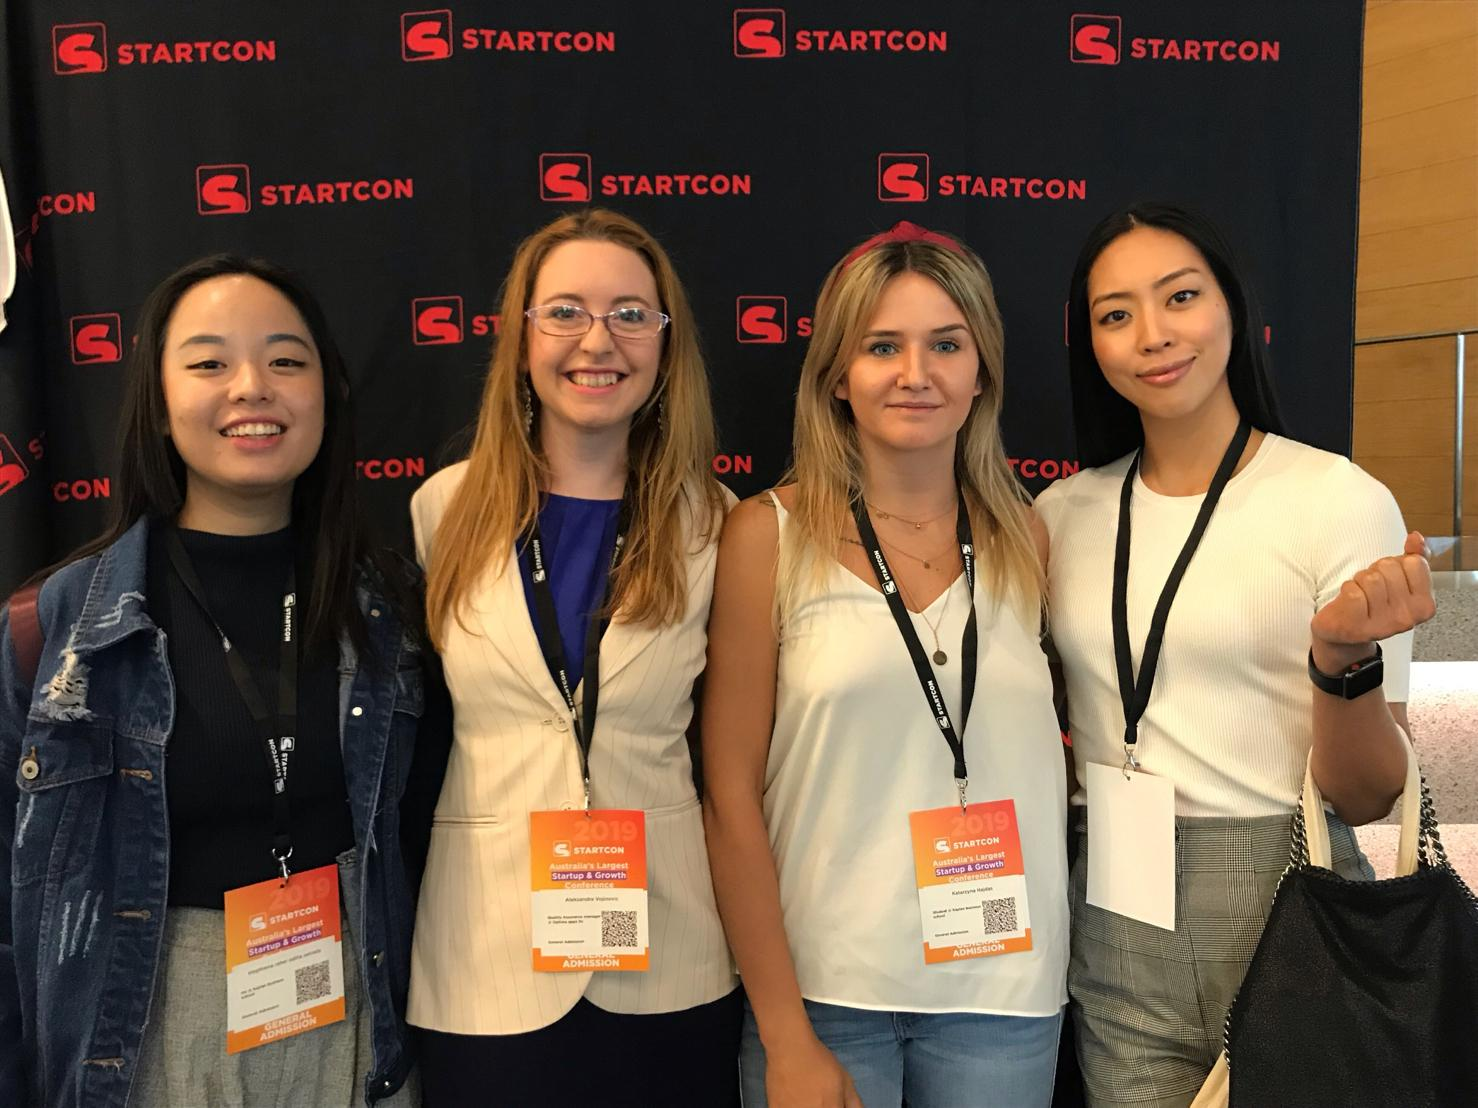 Careers Central Startcon